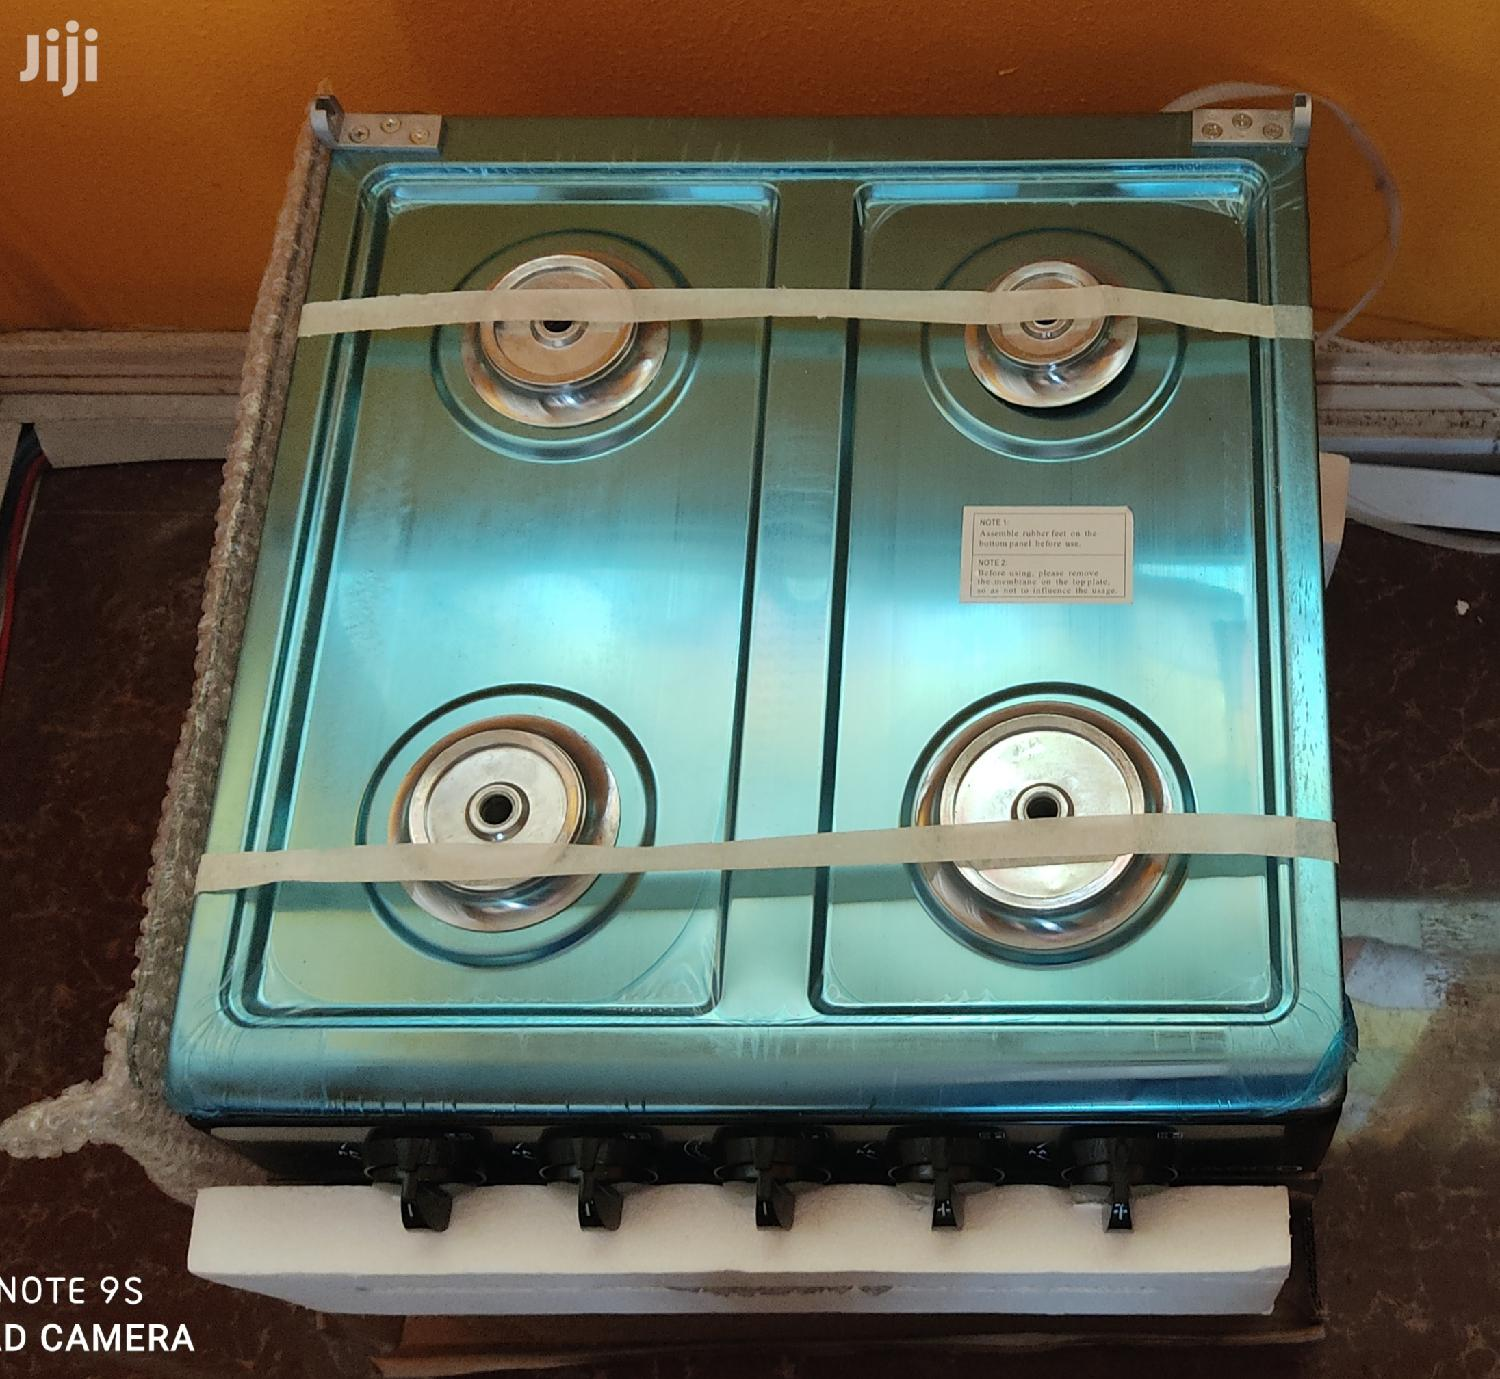 Nasco Table Gas Stove With Oven | Kitchen Appliances for sale in Dansoman, Greater Accra, Ghana